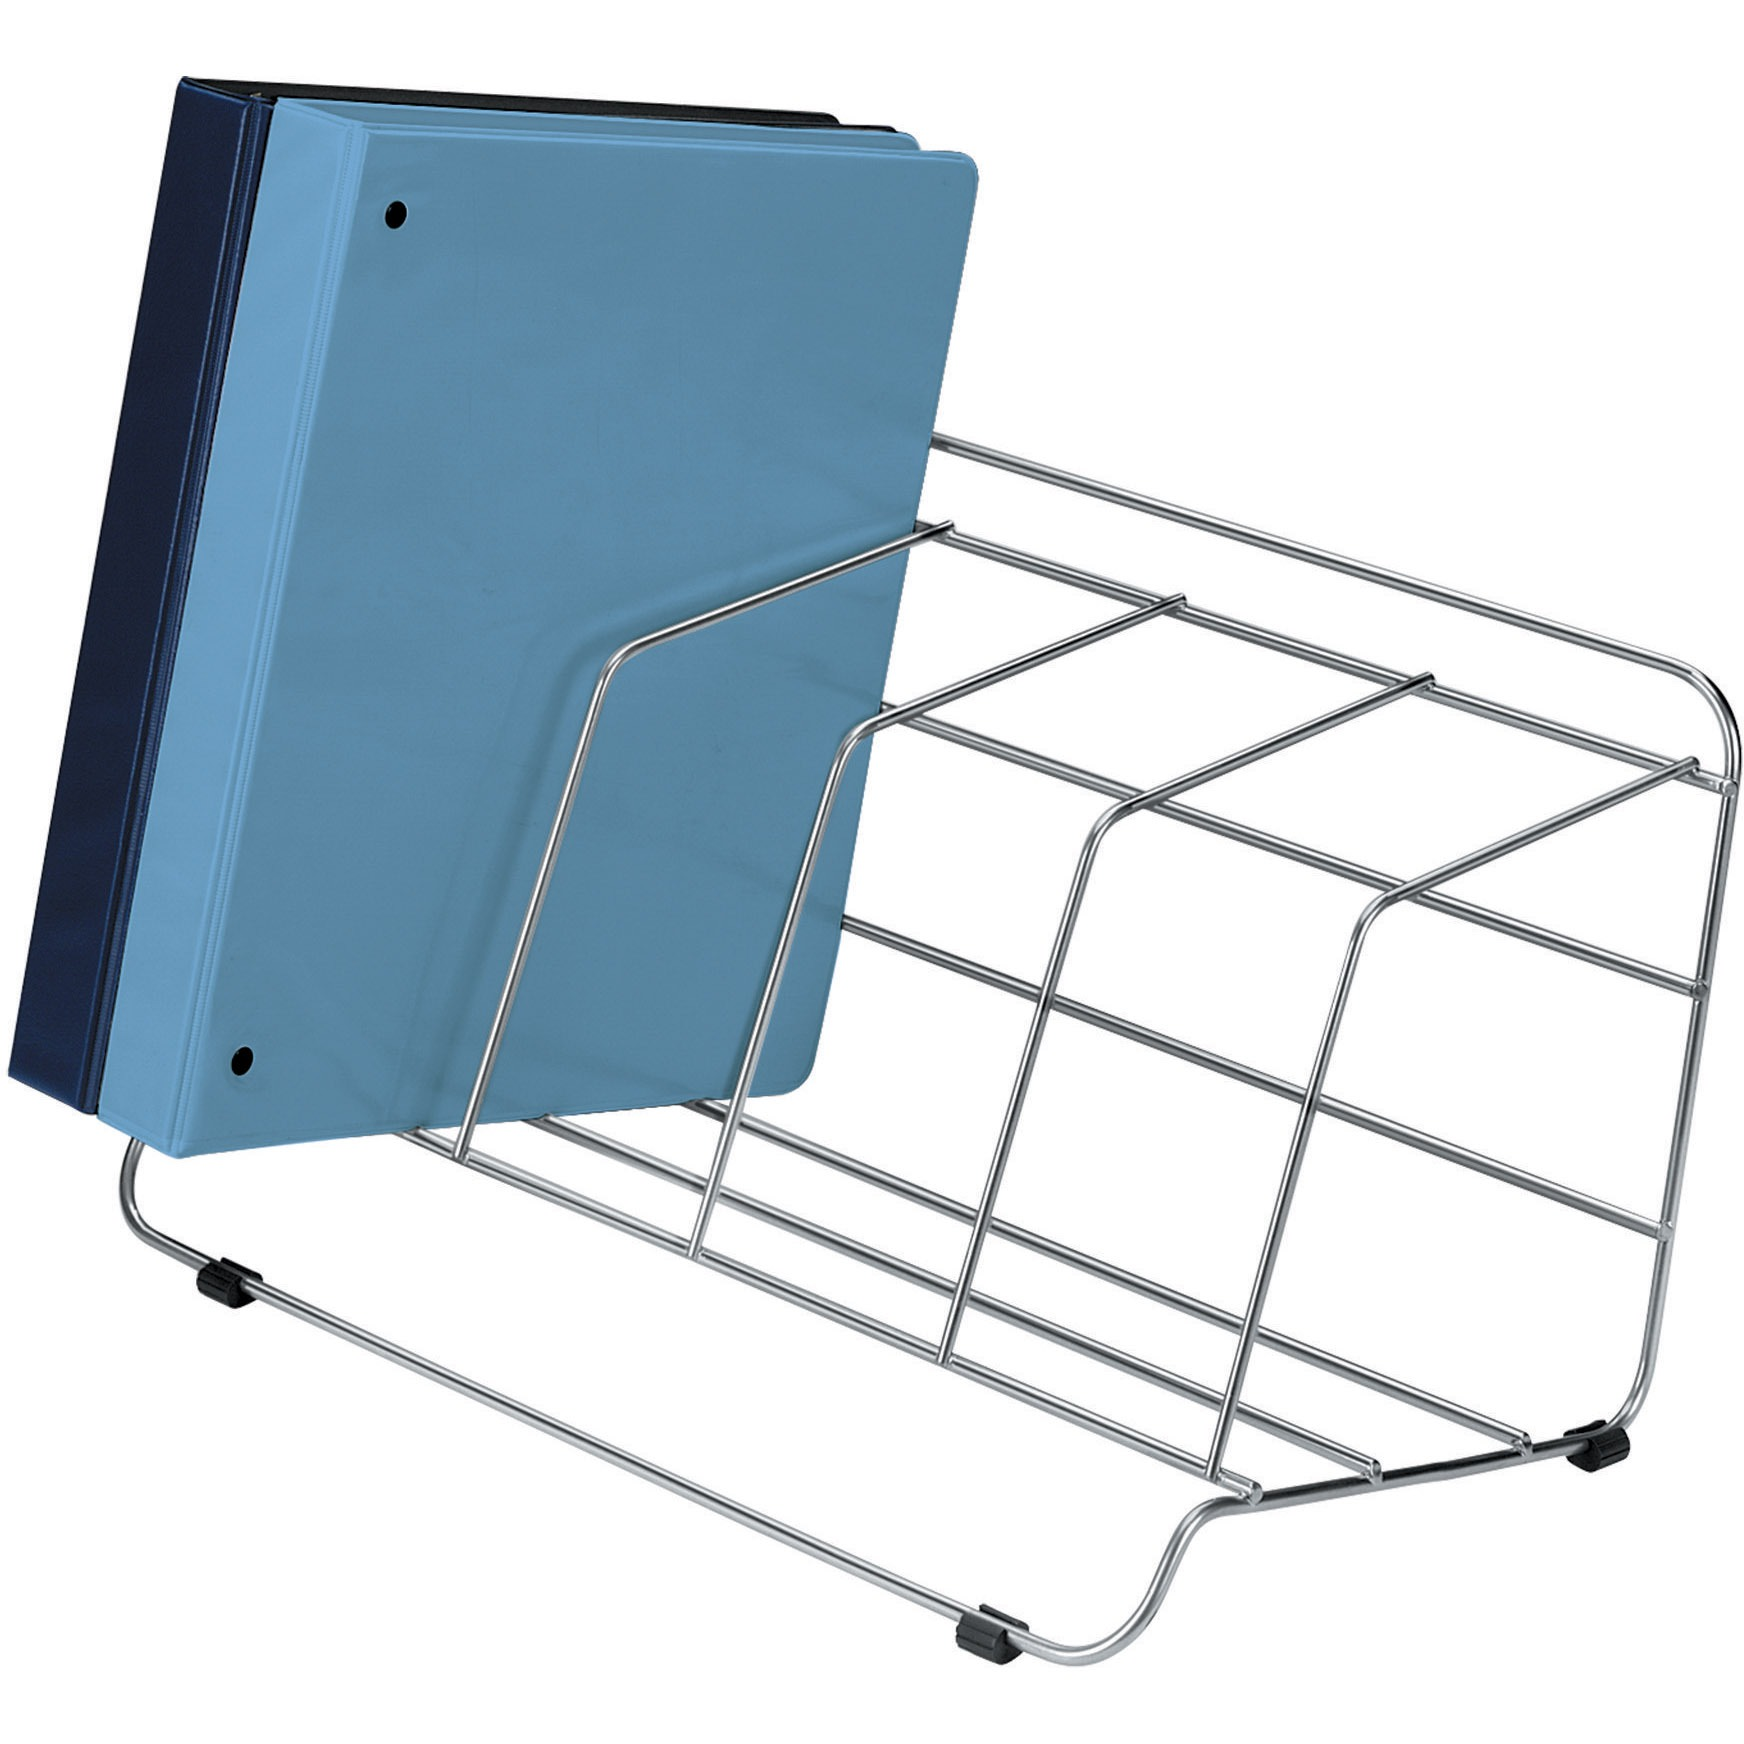 Fellowes Catalog Rack by Fellowes, Inc